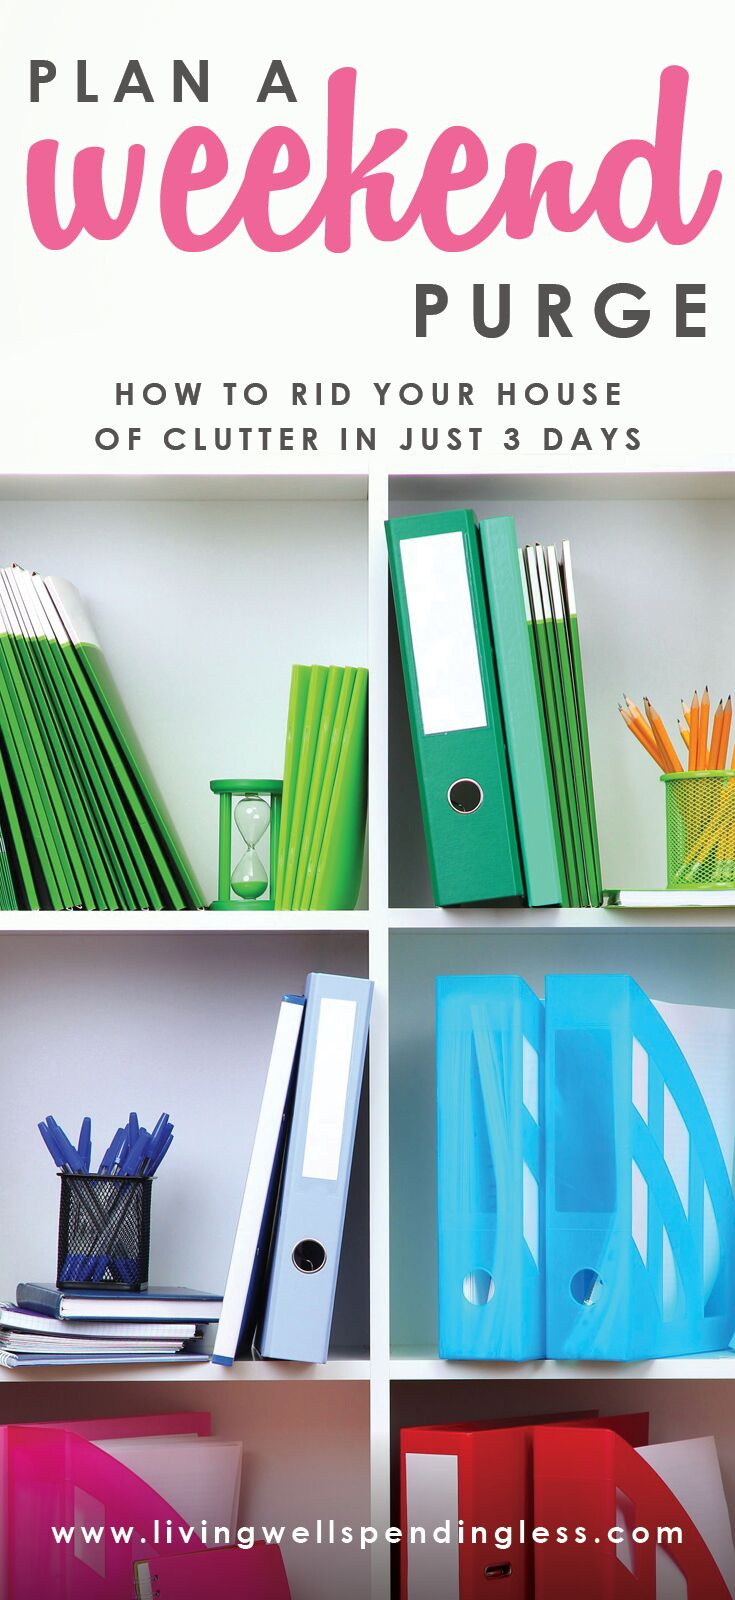 Plan a Weekend Purge: How to Rid Your House of Clutter in Just 3 Days